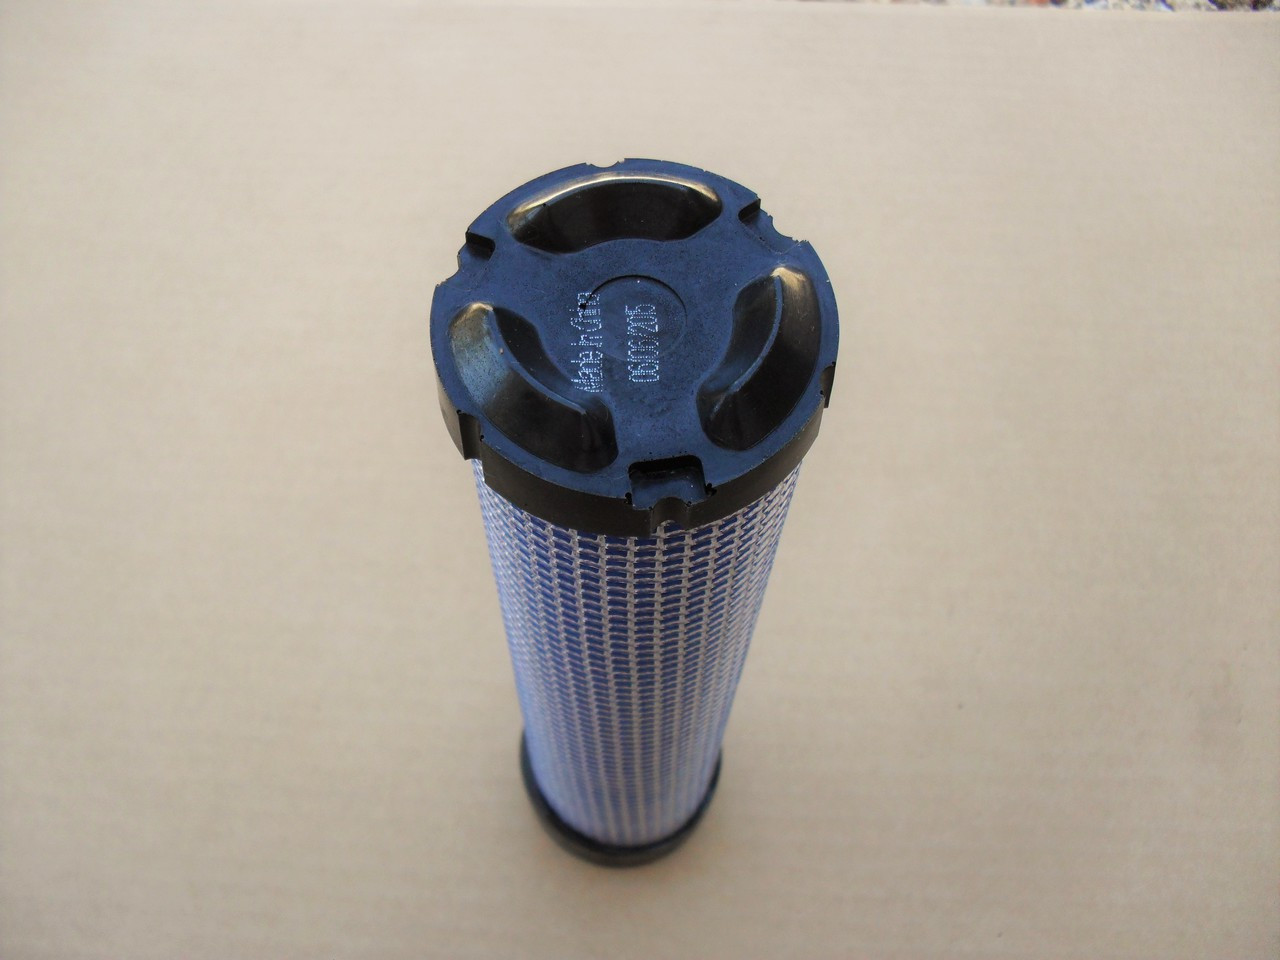 Inner Air Filter for Ariens 21536900, 21538700, 21548700